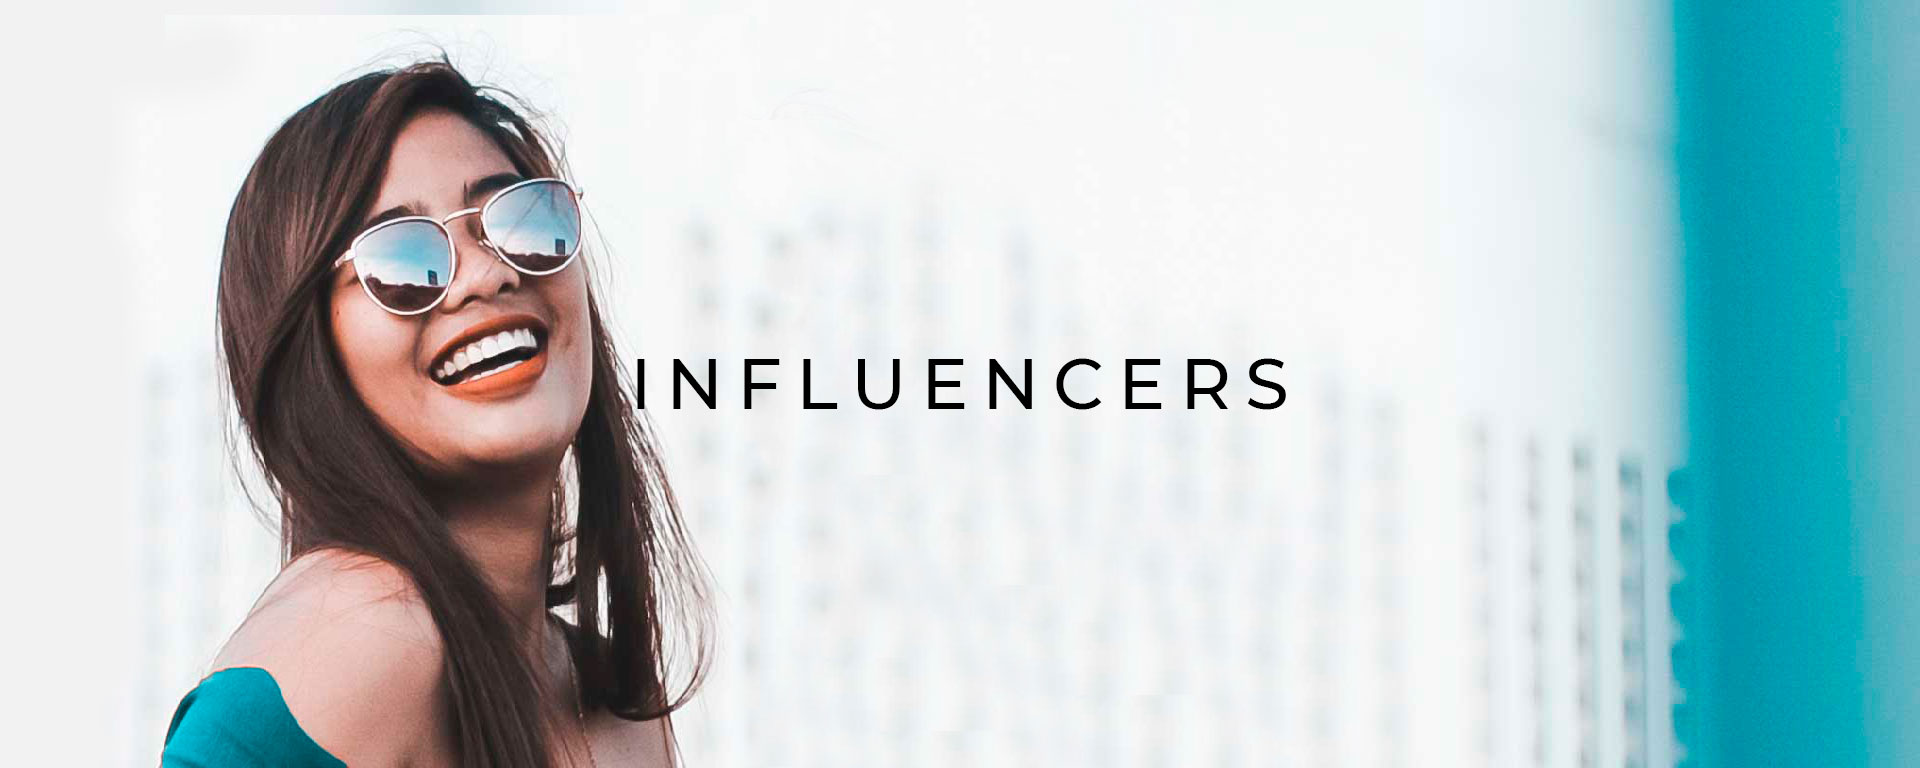 seccion influencers home